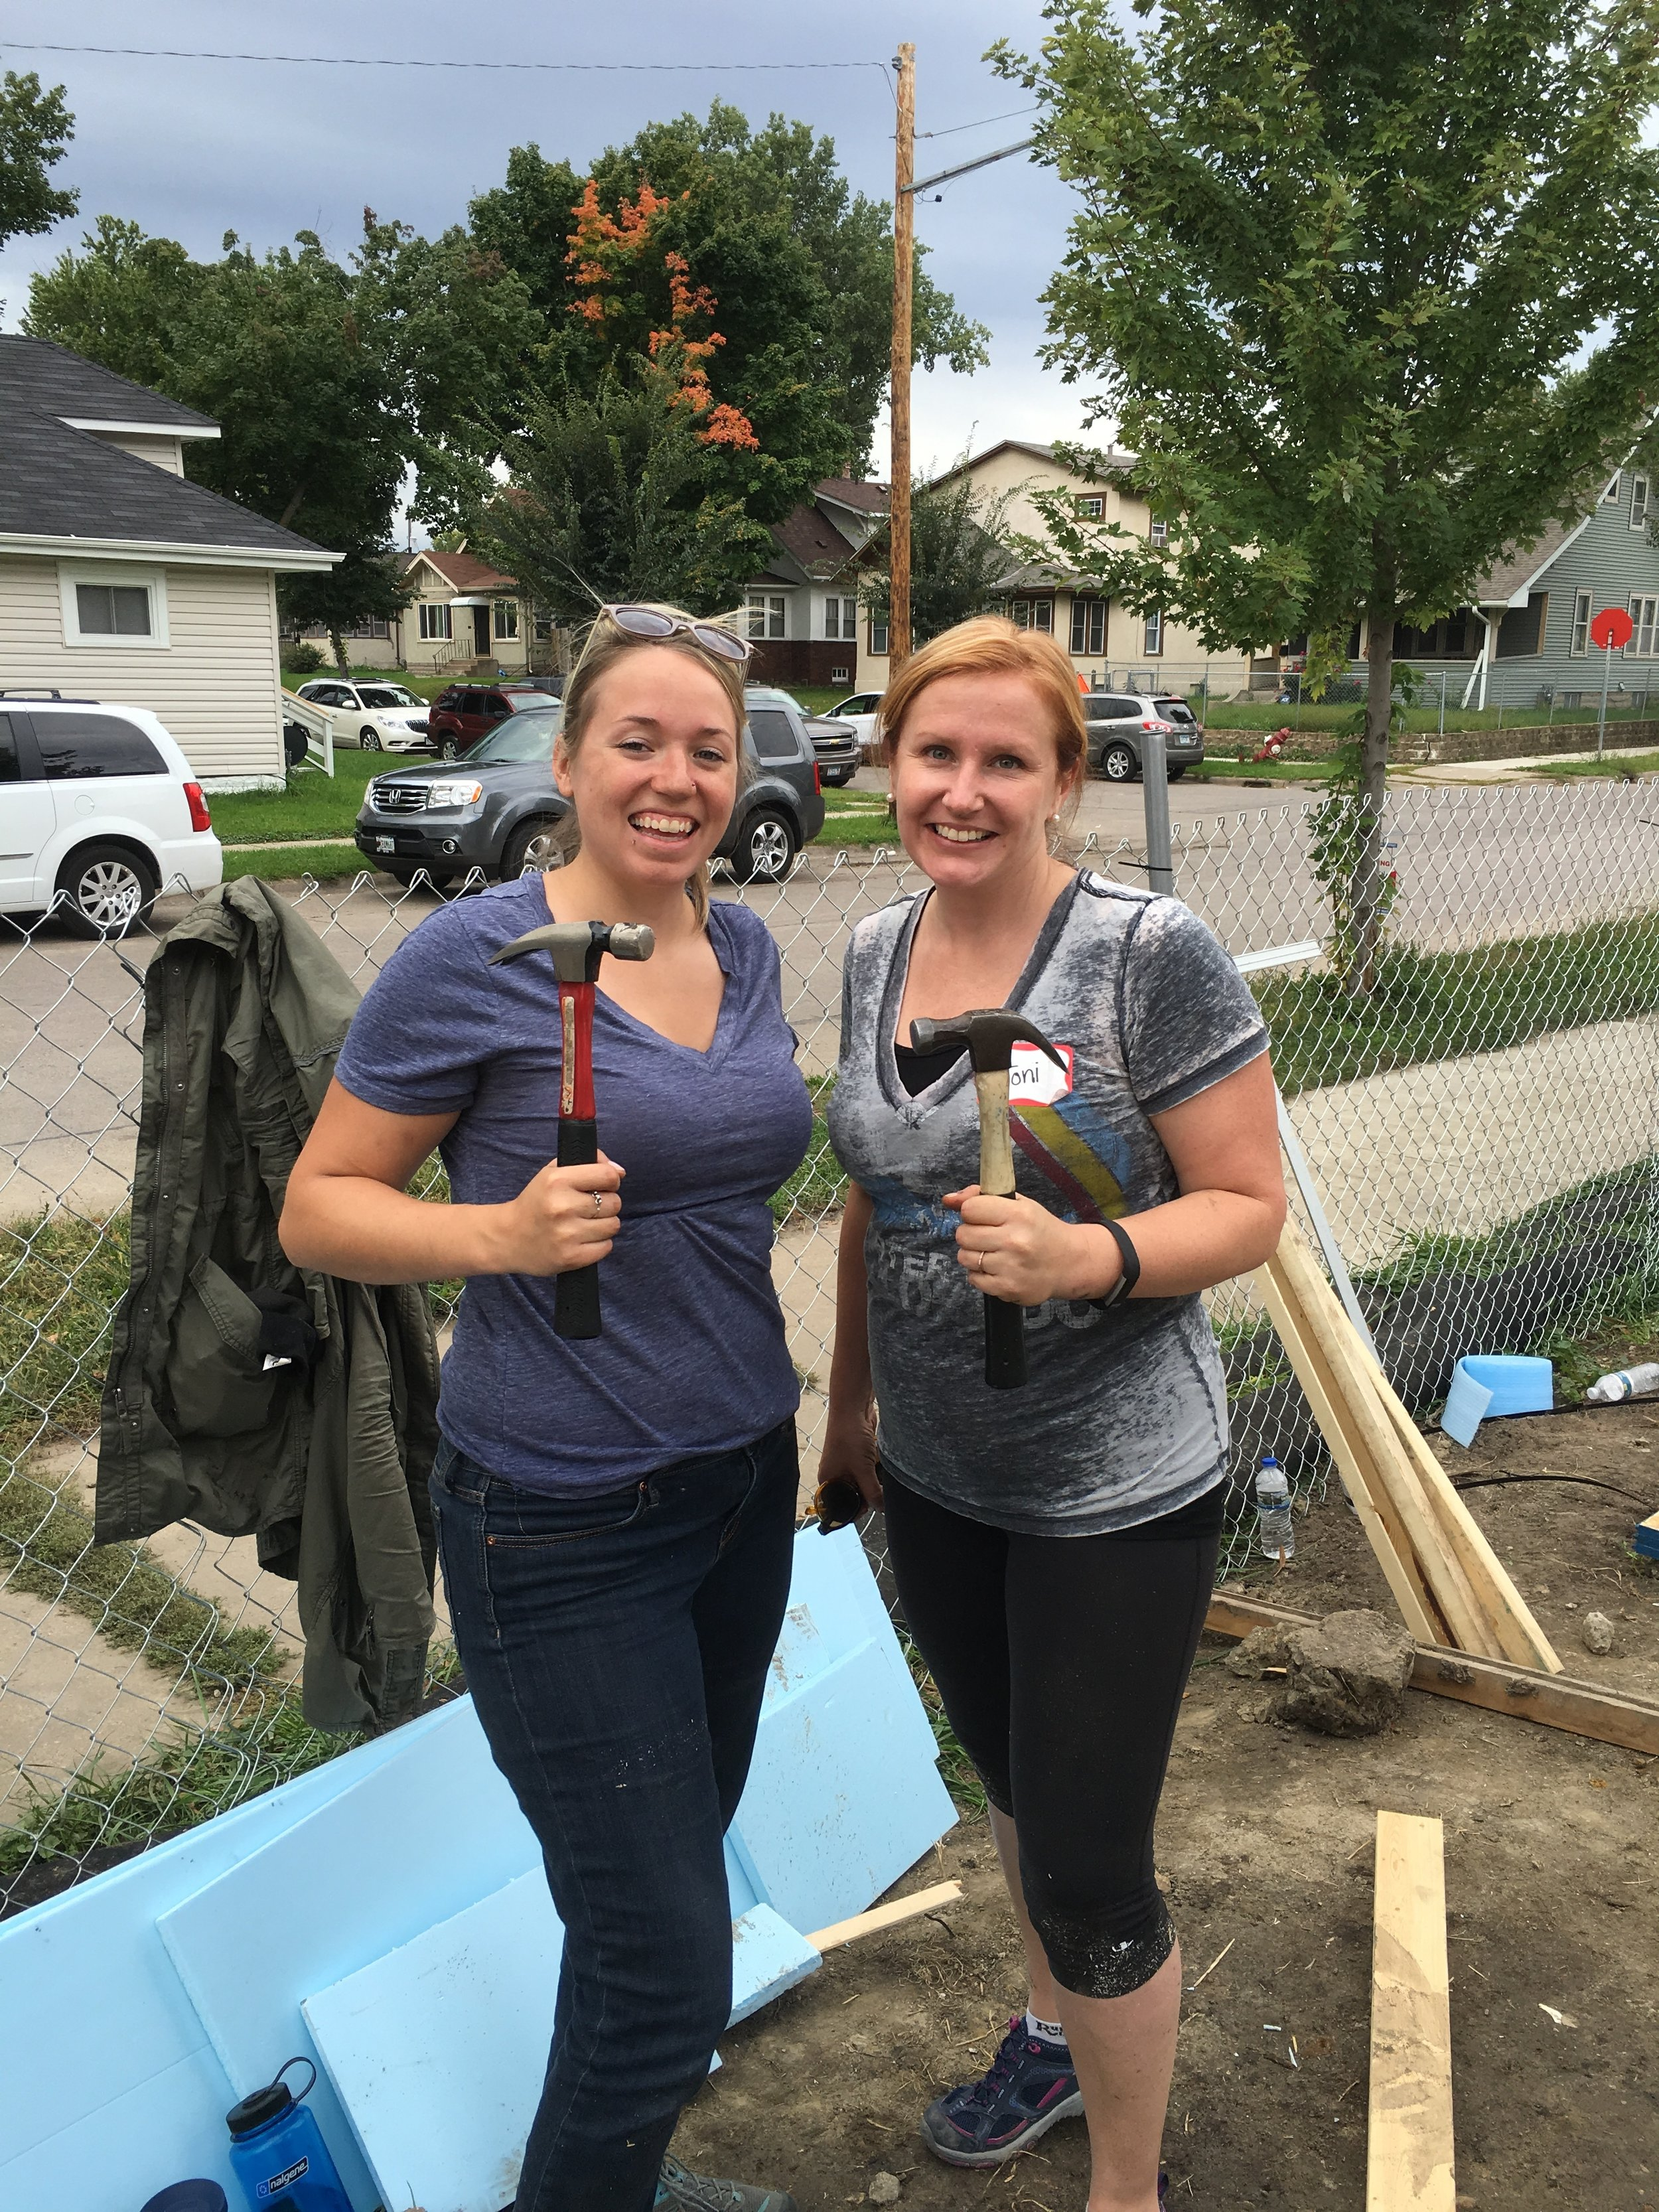 Building a Habitat for Humanity house with the Edina Foundation